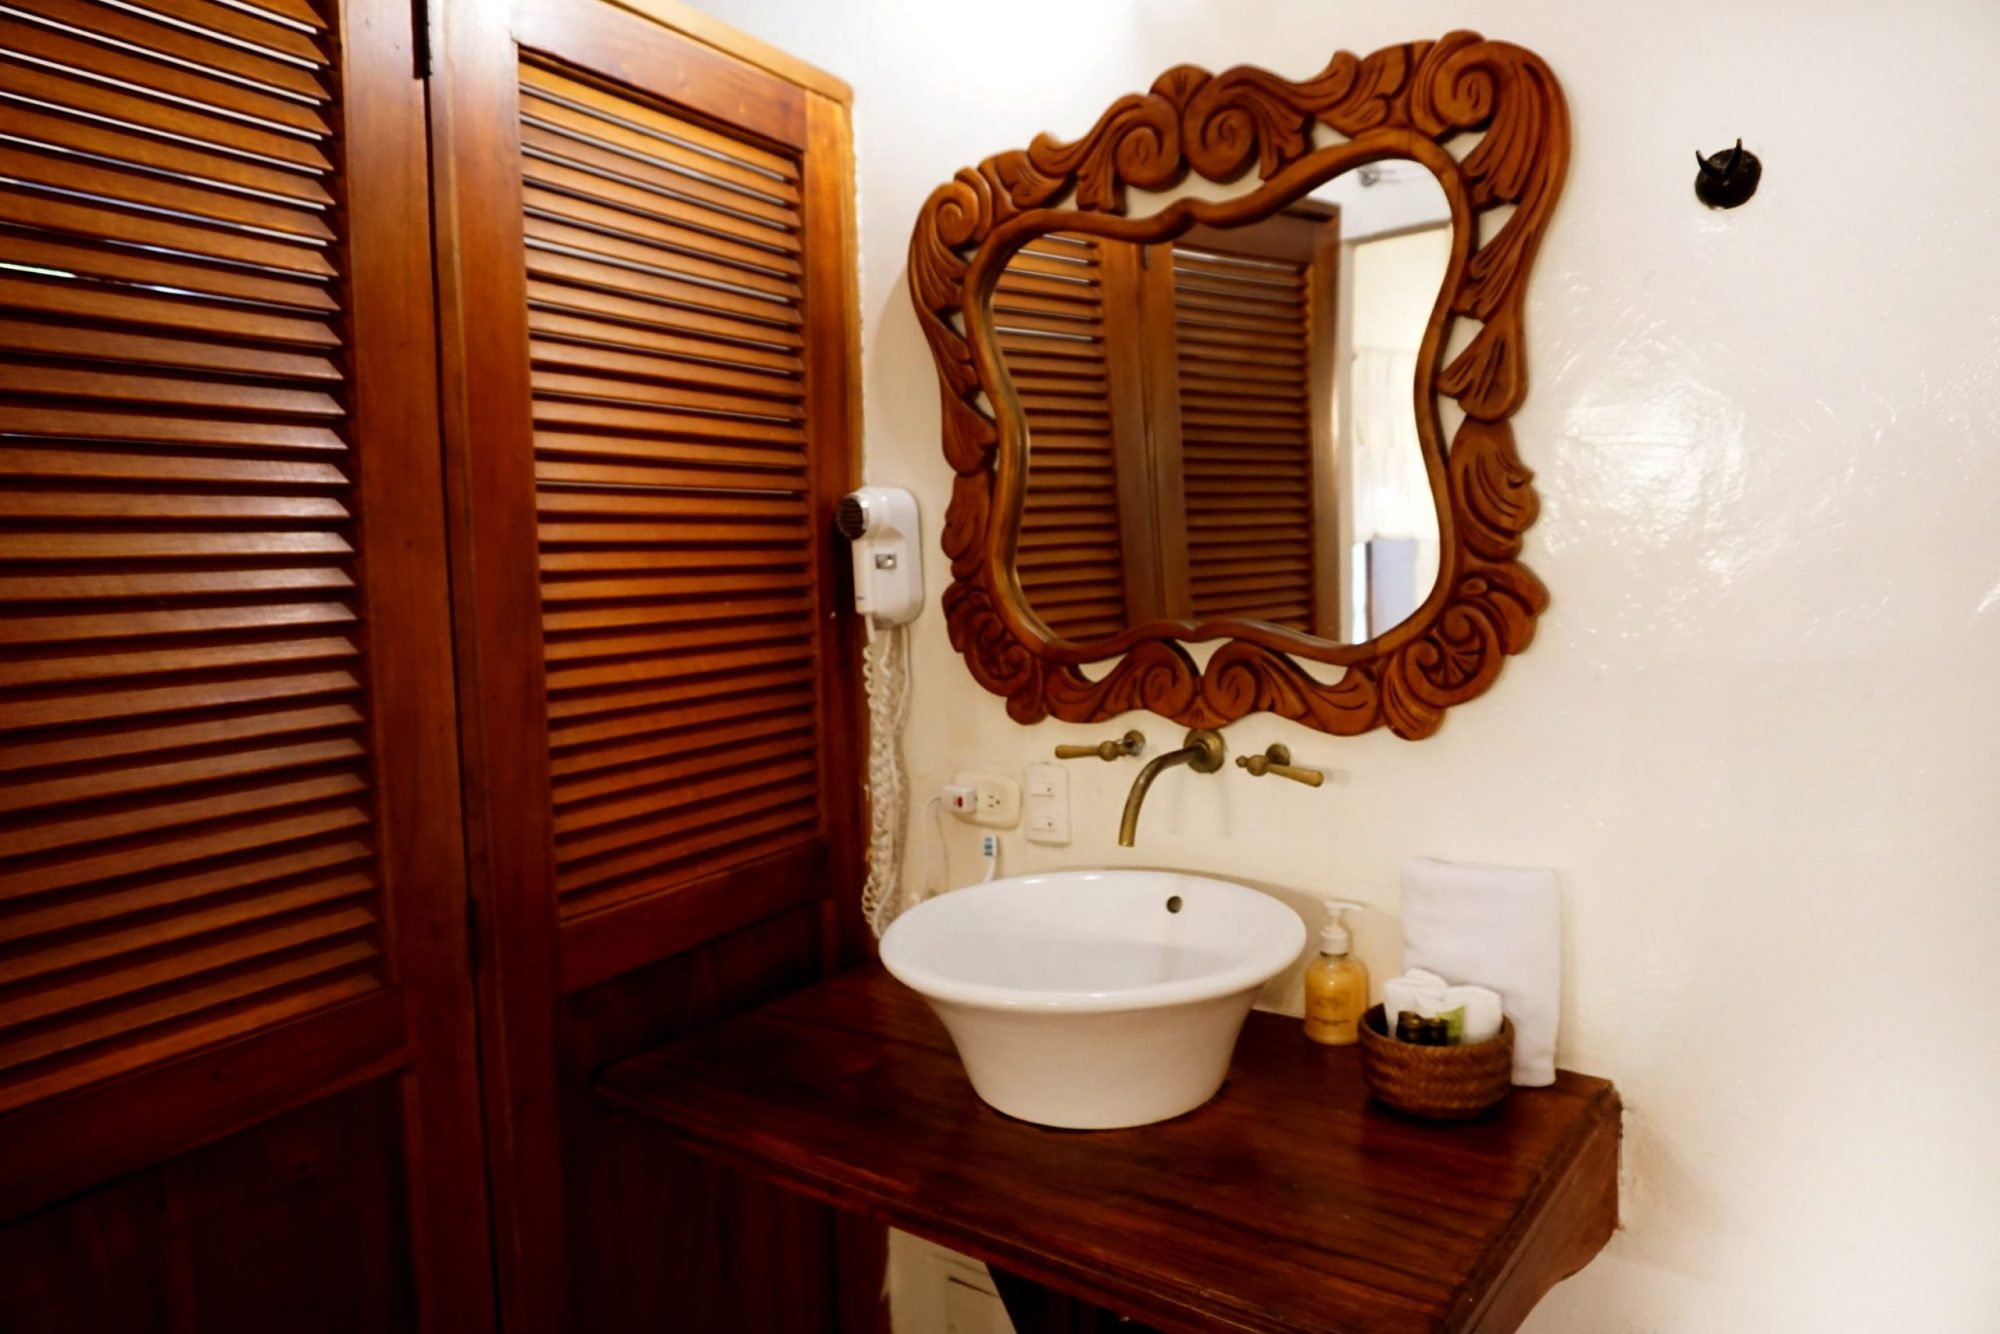 Cartagena Hotels Bathroom Details